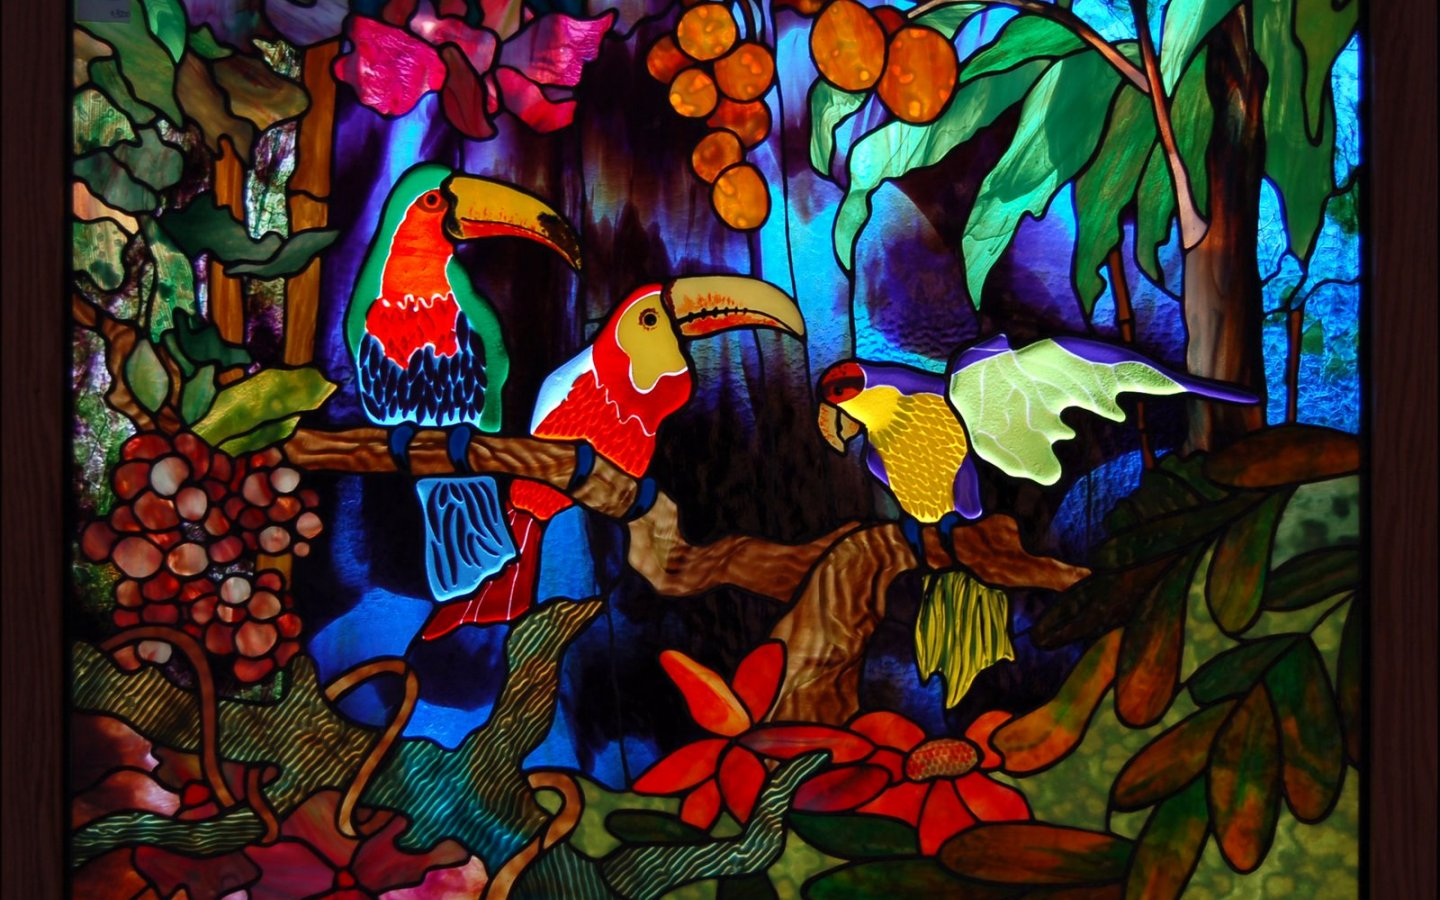 Stained glass art window tropical parrot color jungle forest 4 Sizes Silk Fabric Canvas Poster Print(China (Mainland))